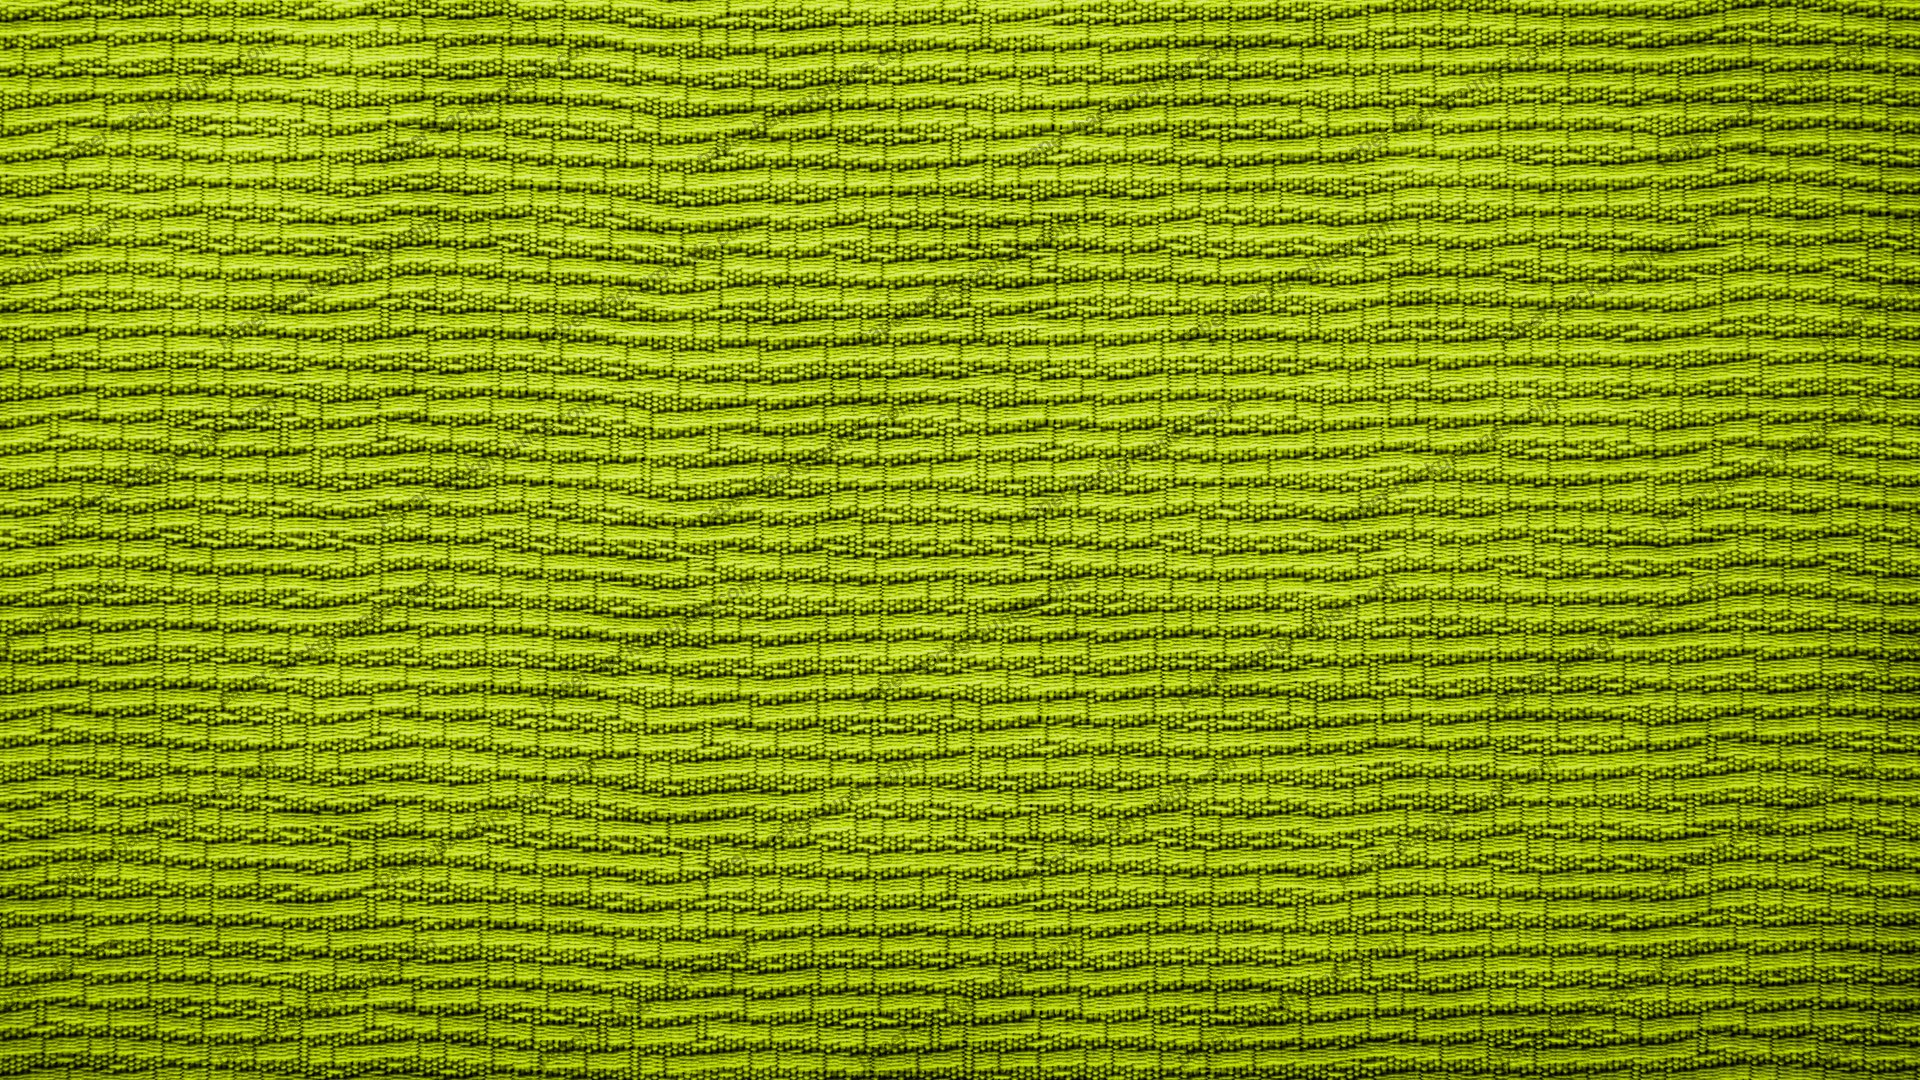 Green Textured Canvas HD 1920 x 1080p